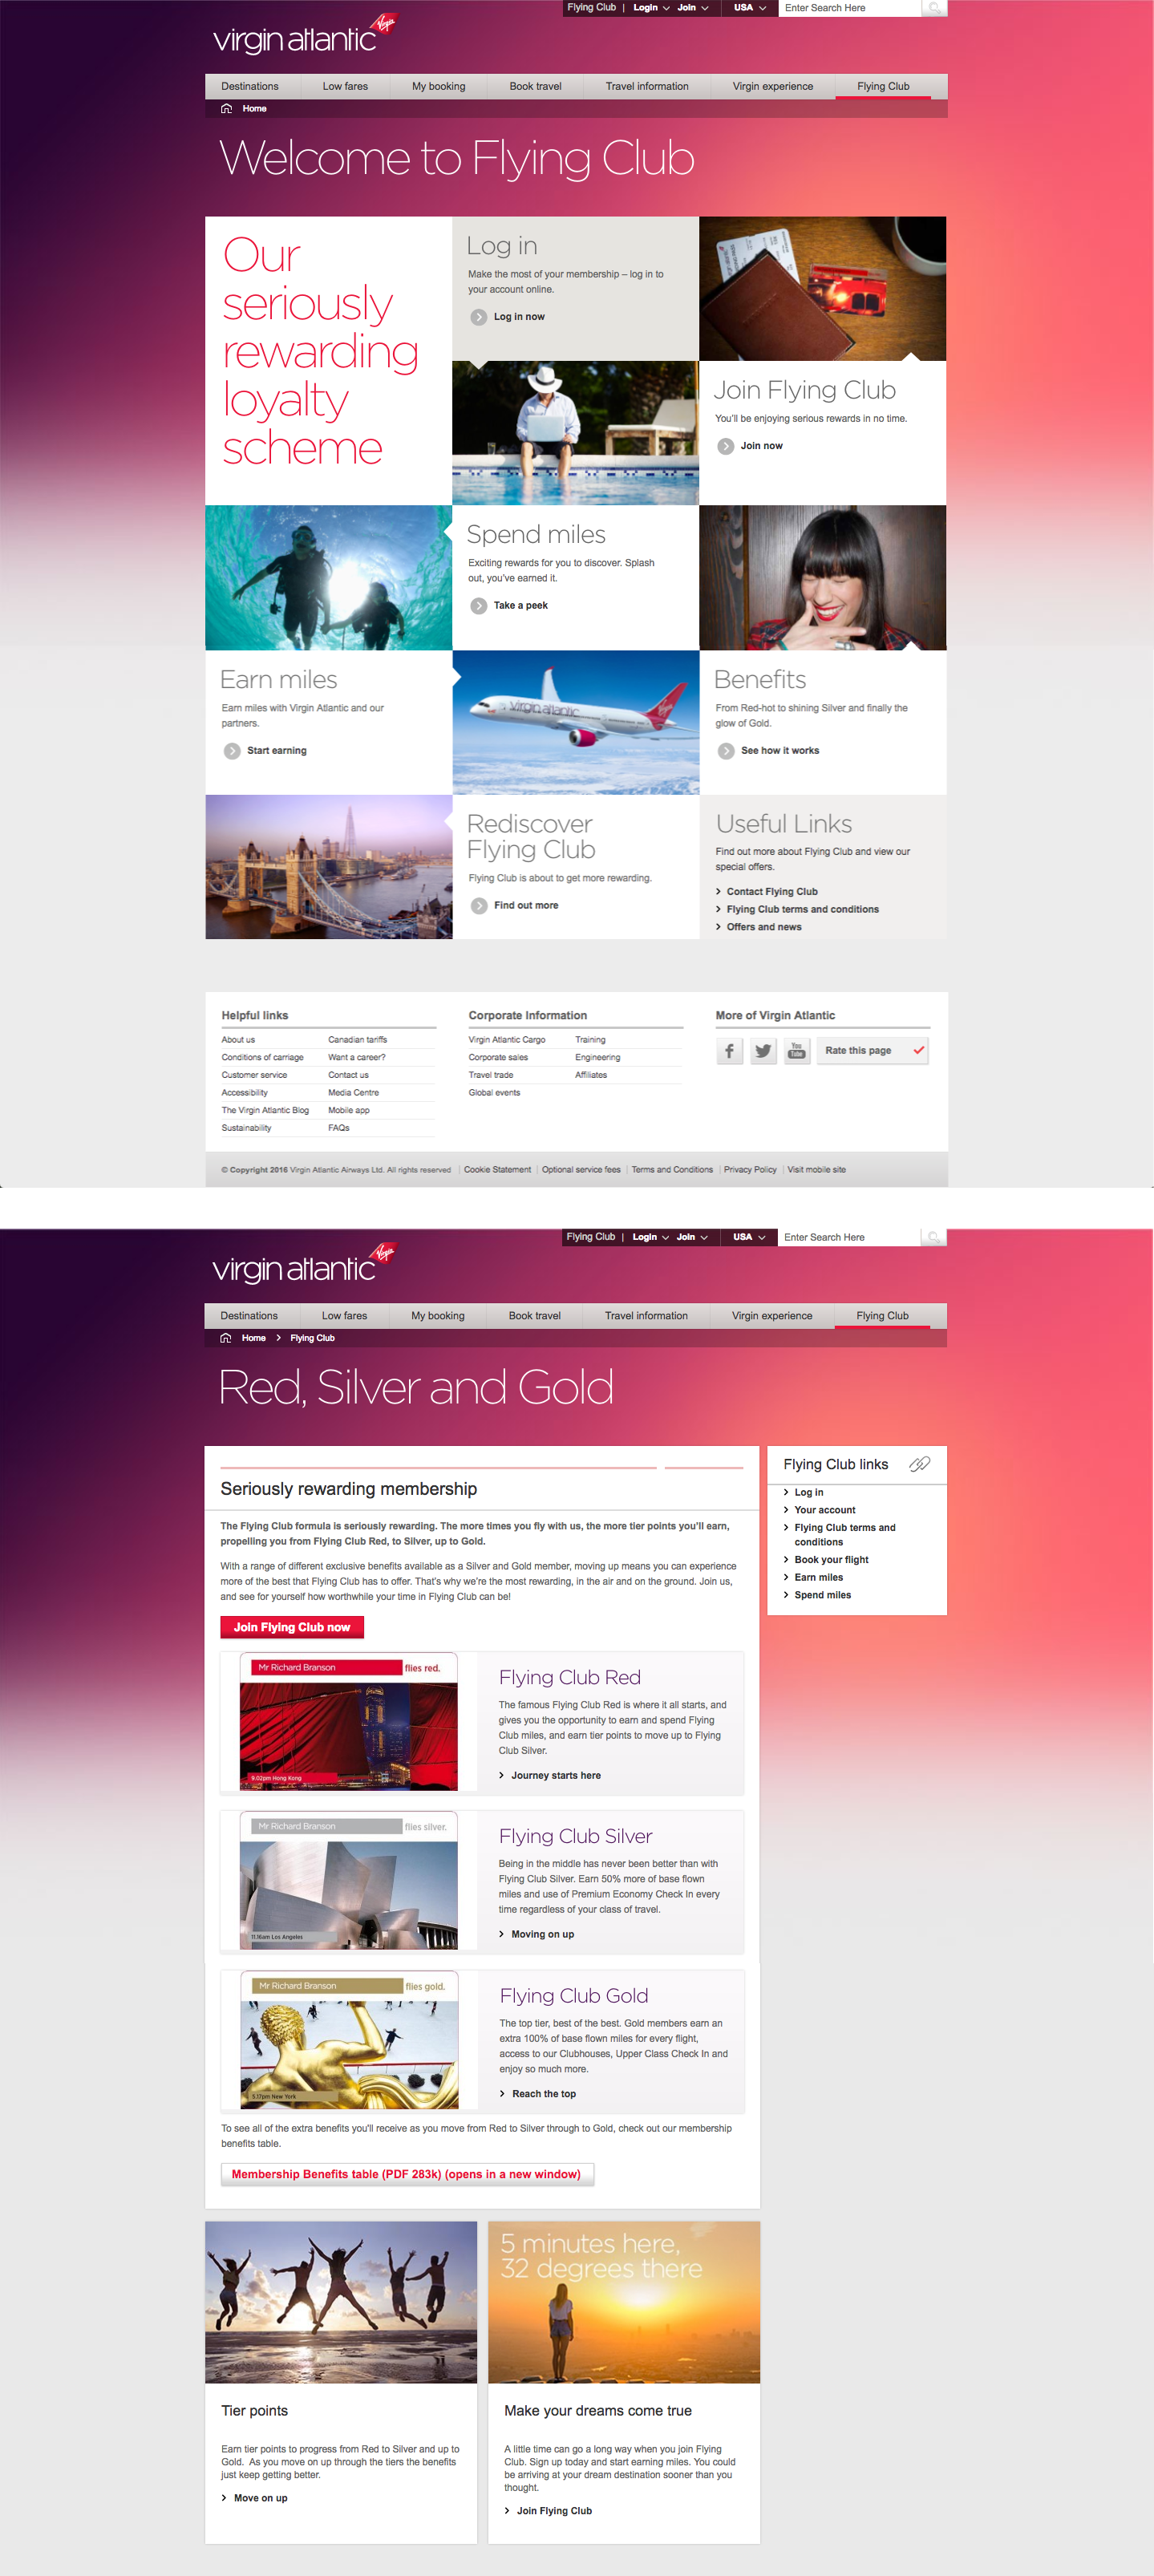 Virgin Atlantic S Flying Club Has 3 Levels To Give Traveler S The